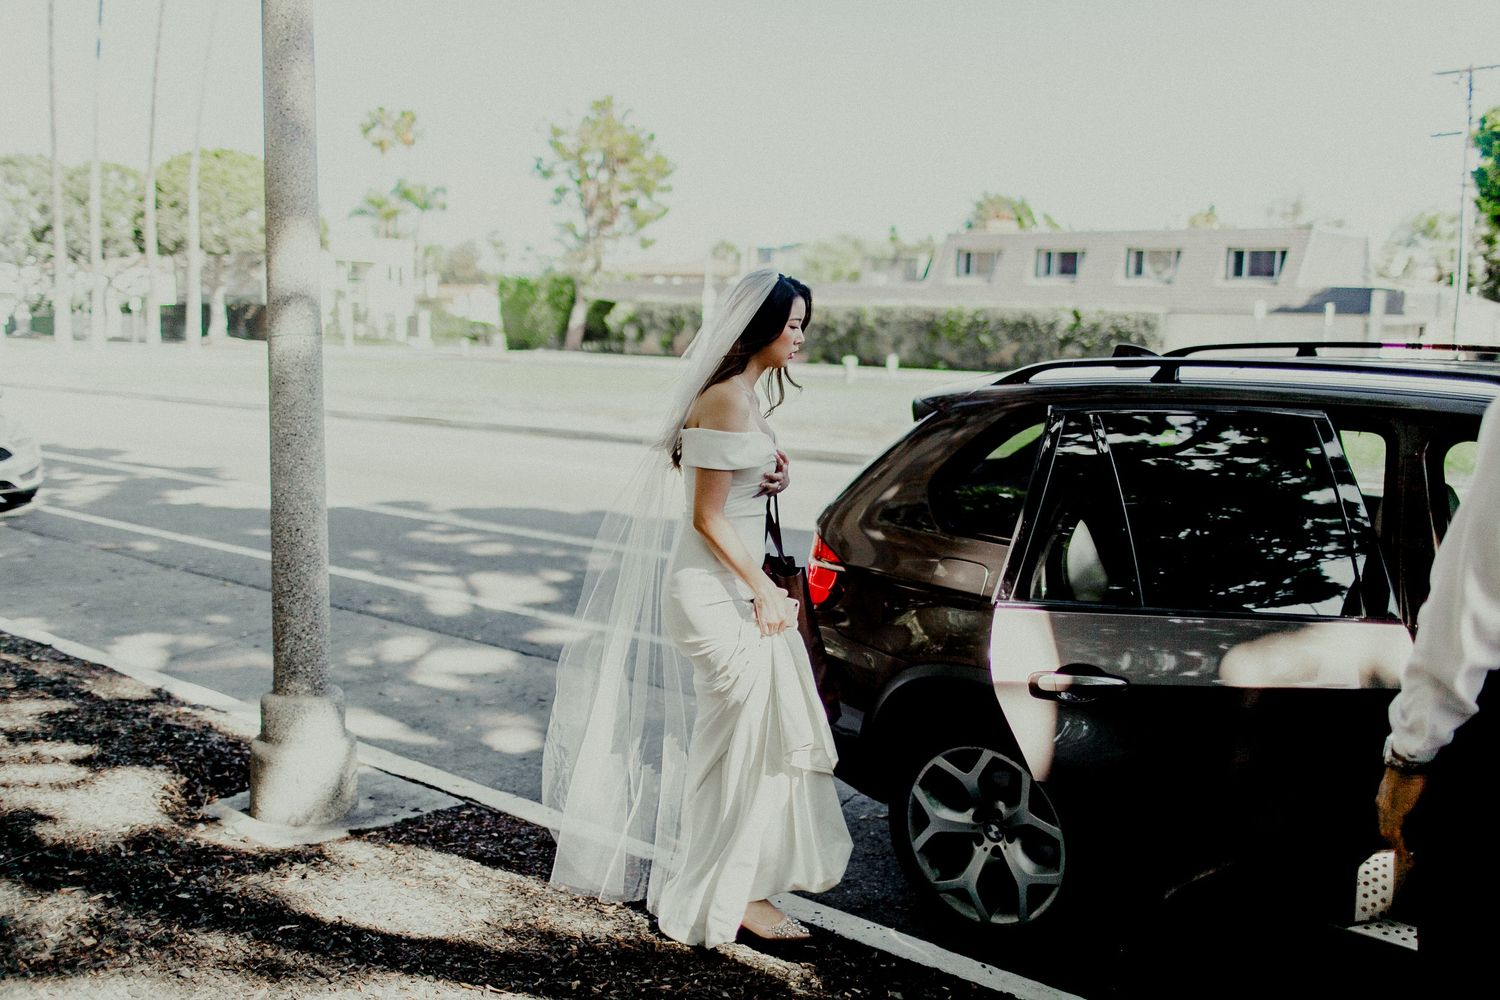 bride entering car heading to ceremony and reception venue